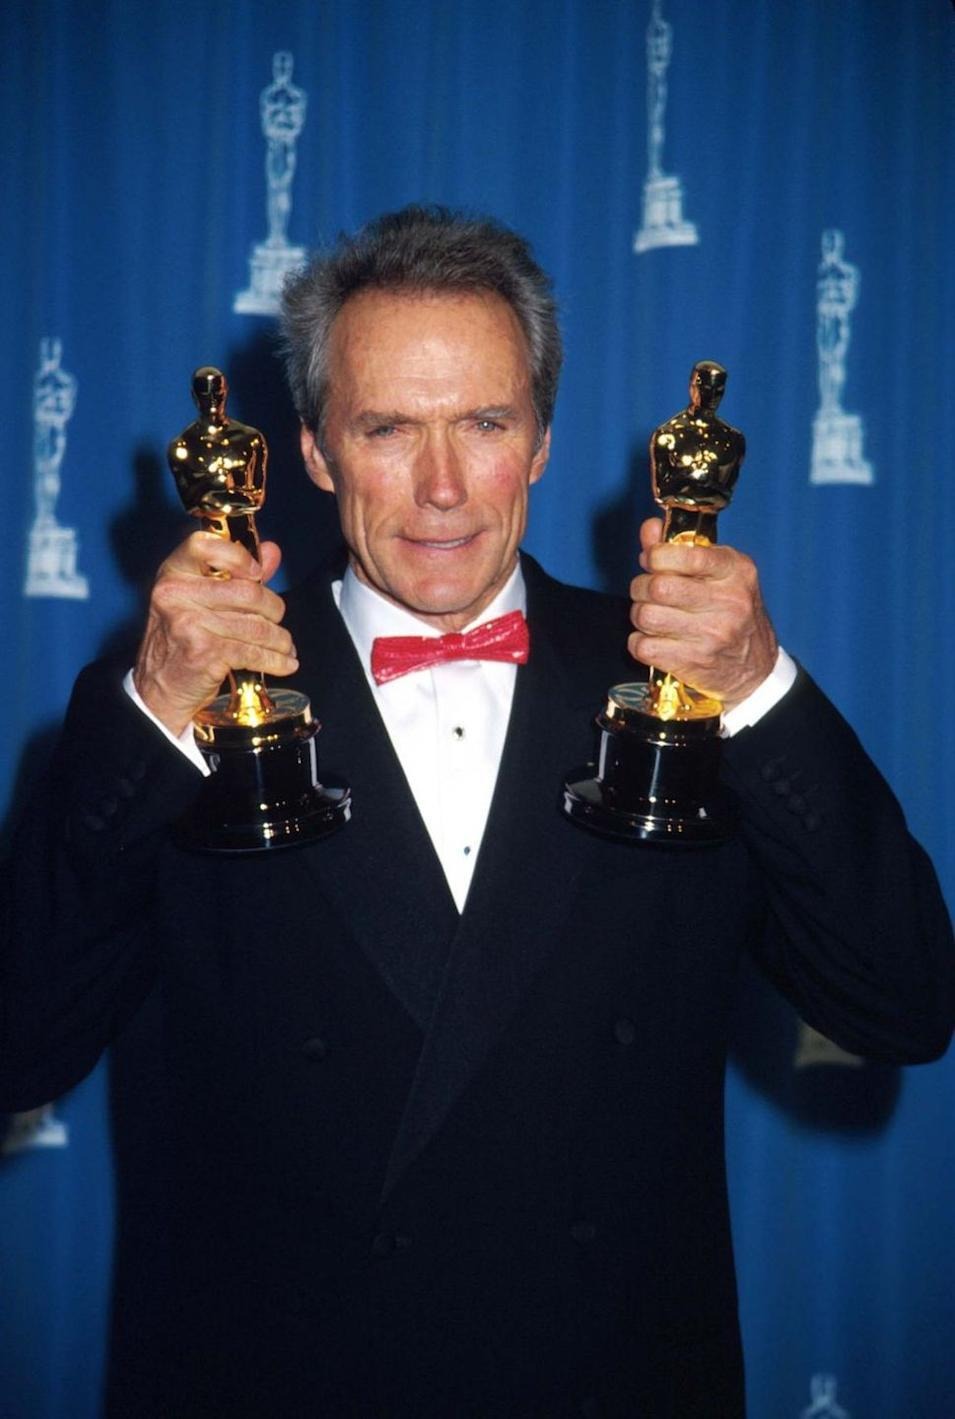 """<p>Once again, Eastwood broke outside of his blockbuster hits to direct and star in <em>Unforgiven</em>. His dramatic performance won the film Best Picture and the actor Best Director at the <a href=""""https://www.britannica.com/biography/Clint-Eastwood/Films-of-the-1990s"""" rel=""""nofollow noopener"""" target=""""_blank"""" data-ylk=""""slk:Academy Awards"""" class=""""link rapid-noclick-resp"""">Academy Awards</a>. </p>"""